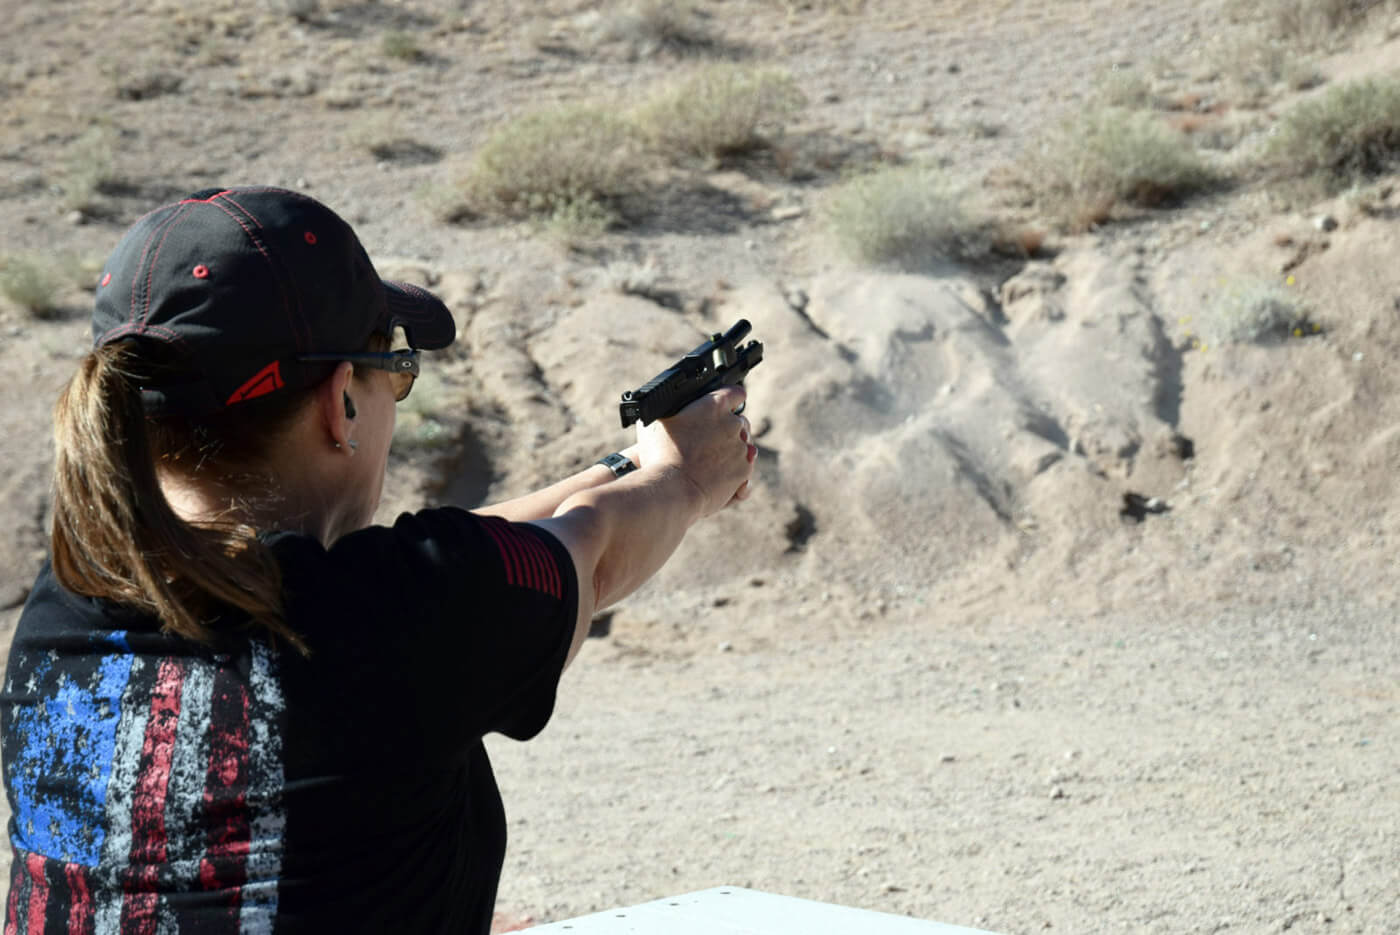 Recoil of handgun during a pistol competition